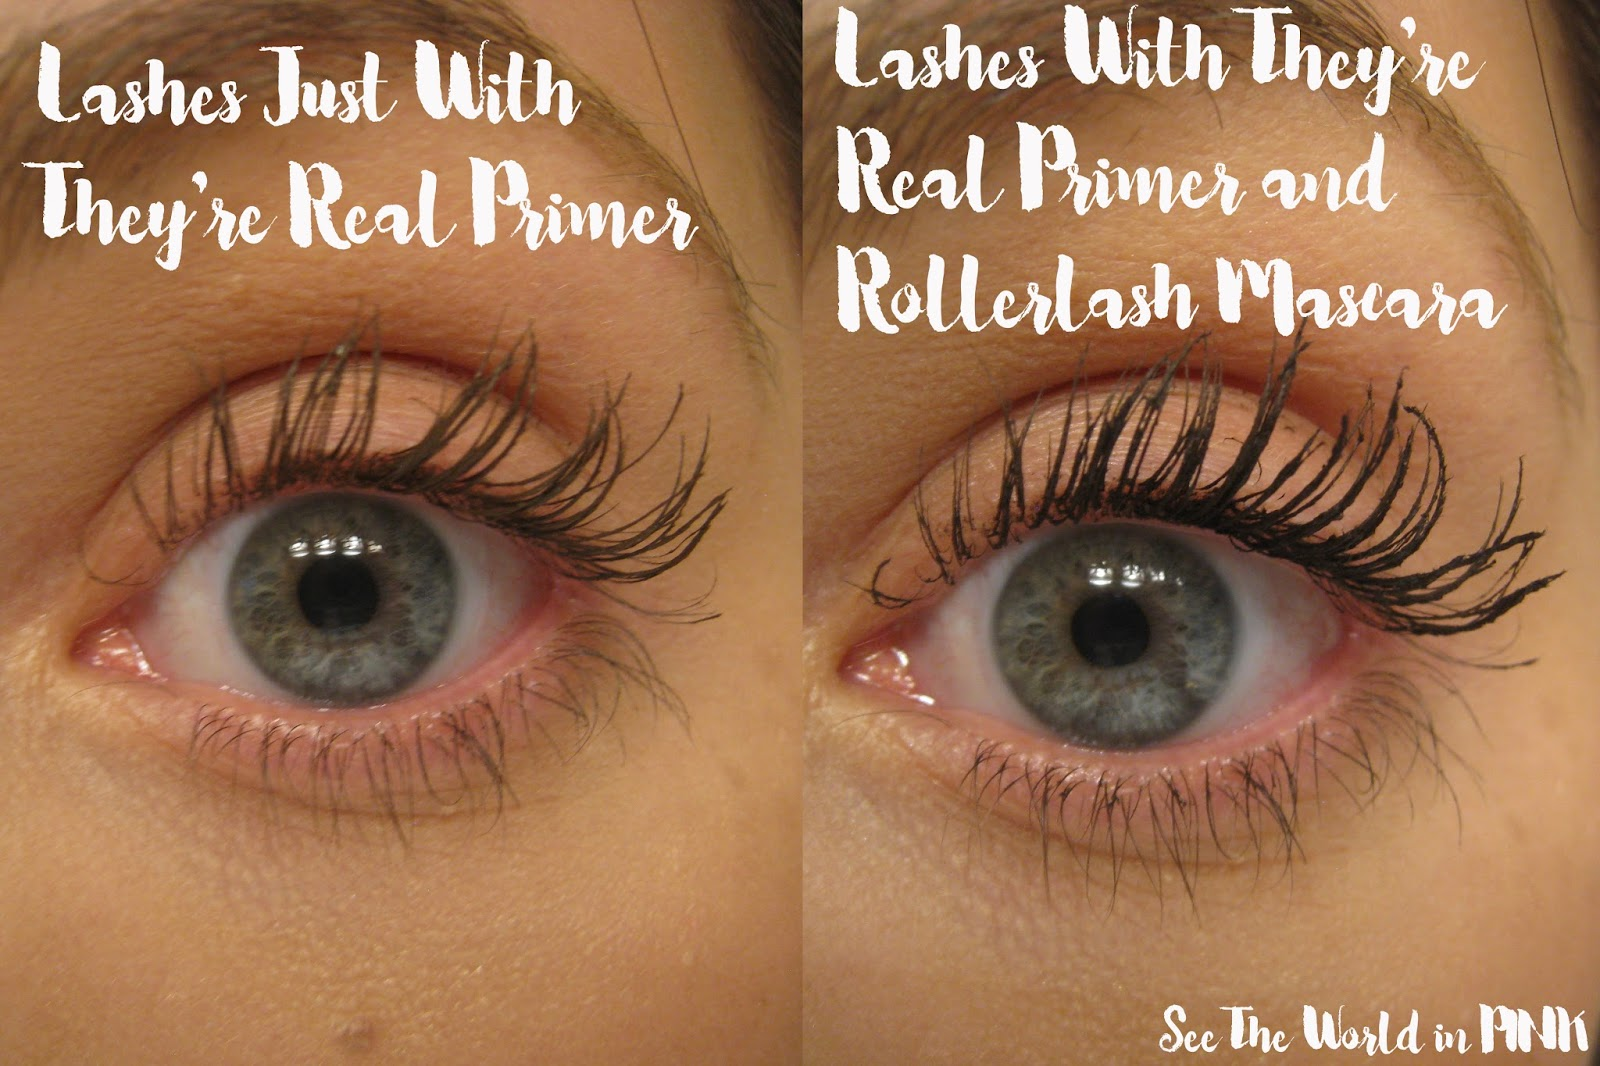 258f16cb95e For each of these, I used 1 coat of They're Real! Lash Primer, followed by  1 coat of Rollerlash Mascara.